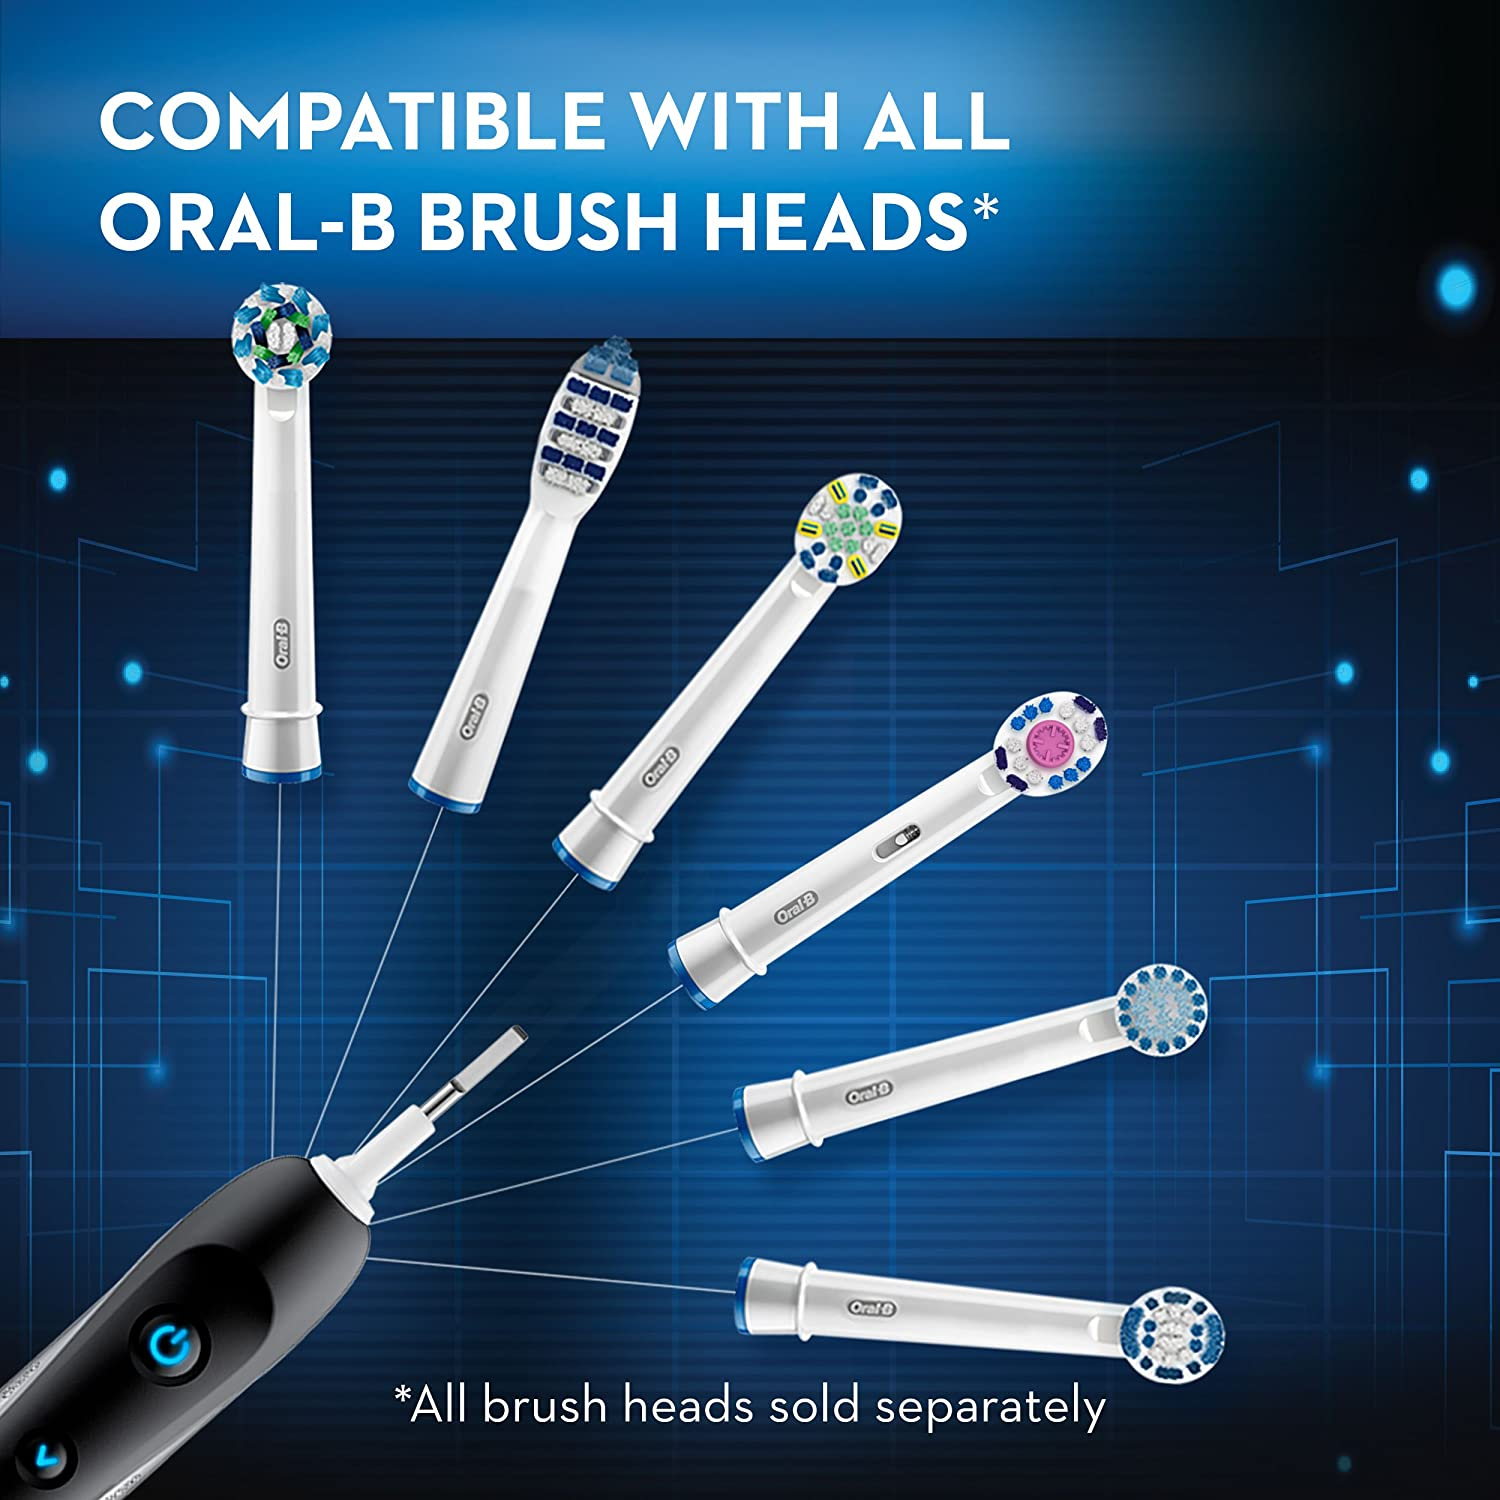 Oral-B Electric Toothbrush Heads